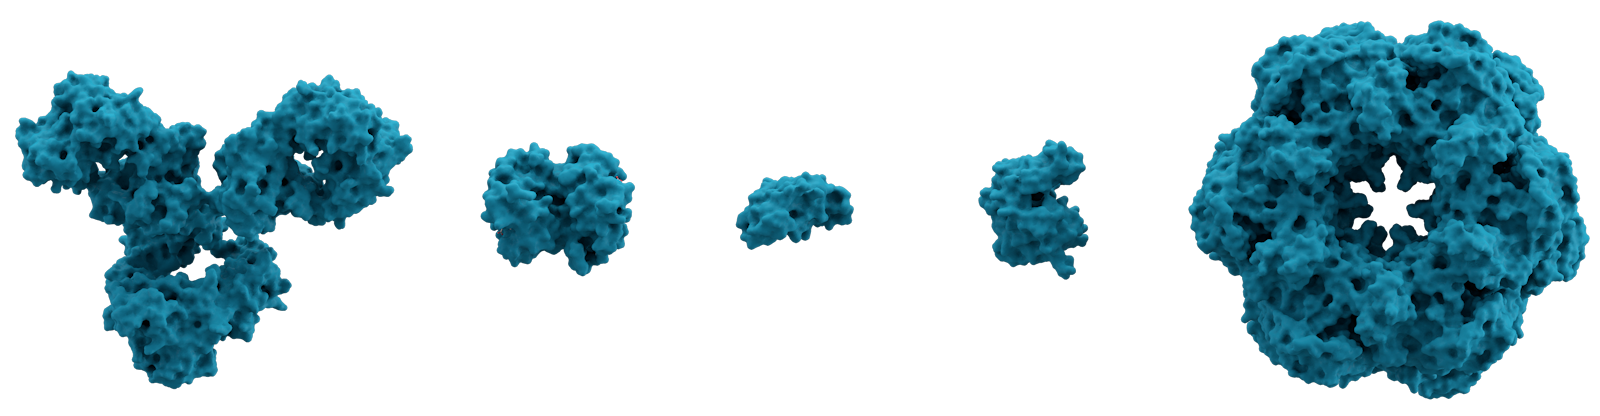 A number of proteins represented in 3D. From left to right are: immunoglobulin G (IgG, an antibody), hemoglobin, insulin (a hormone), adenylate kinase (an enzyme), and glutamine synthetase (an enzyme)